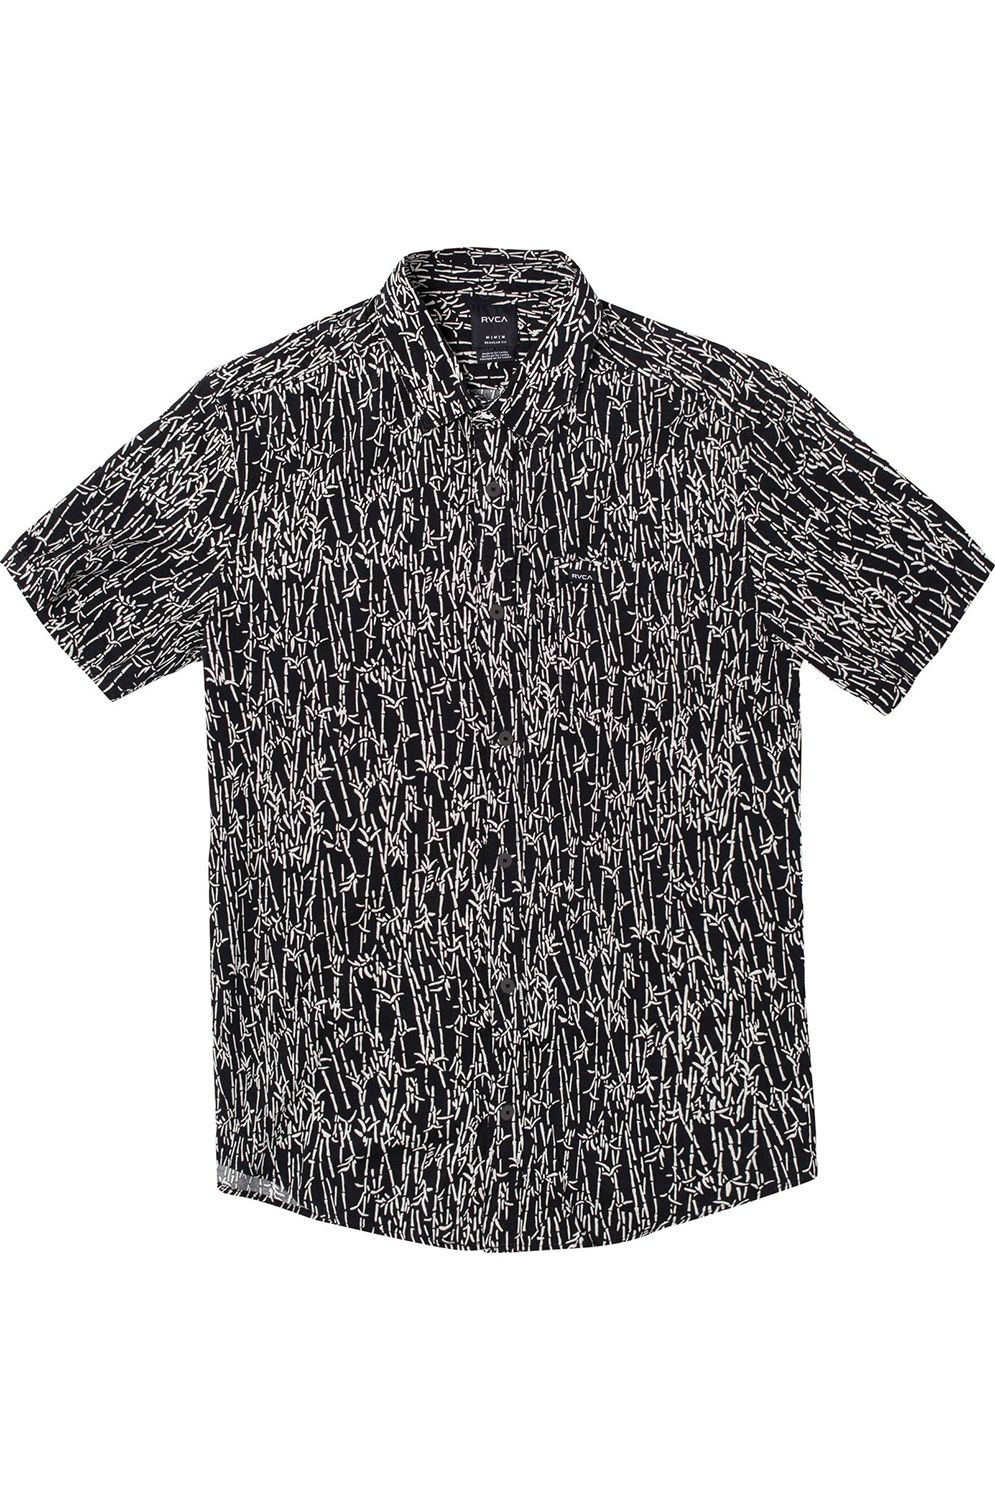 RVCA Shirt JUNGLE FUZZ SS Black